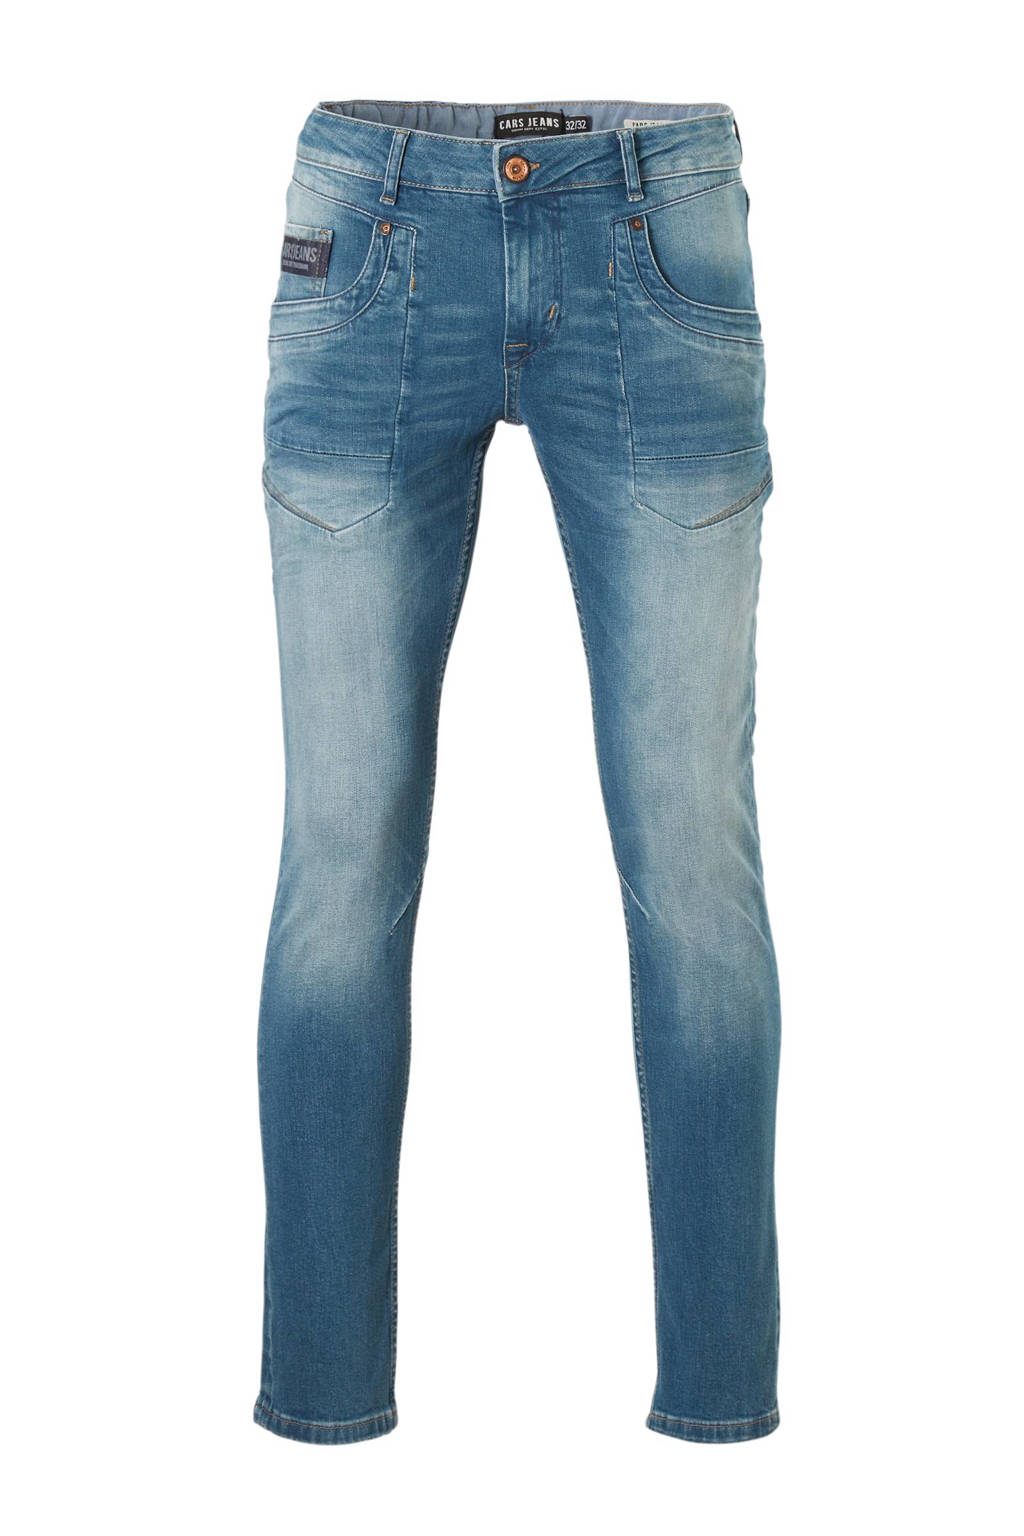 Cars slim fit jeans Stockton green cast used, Green Cast Used